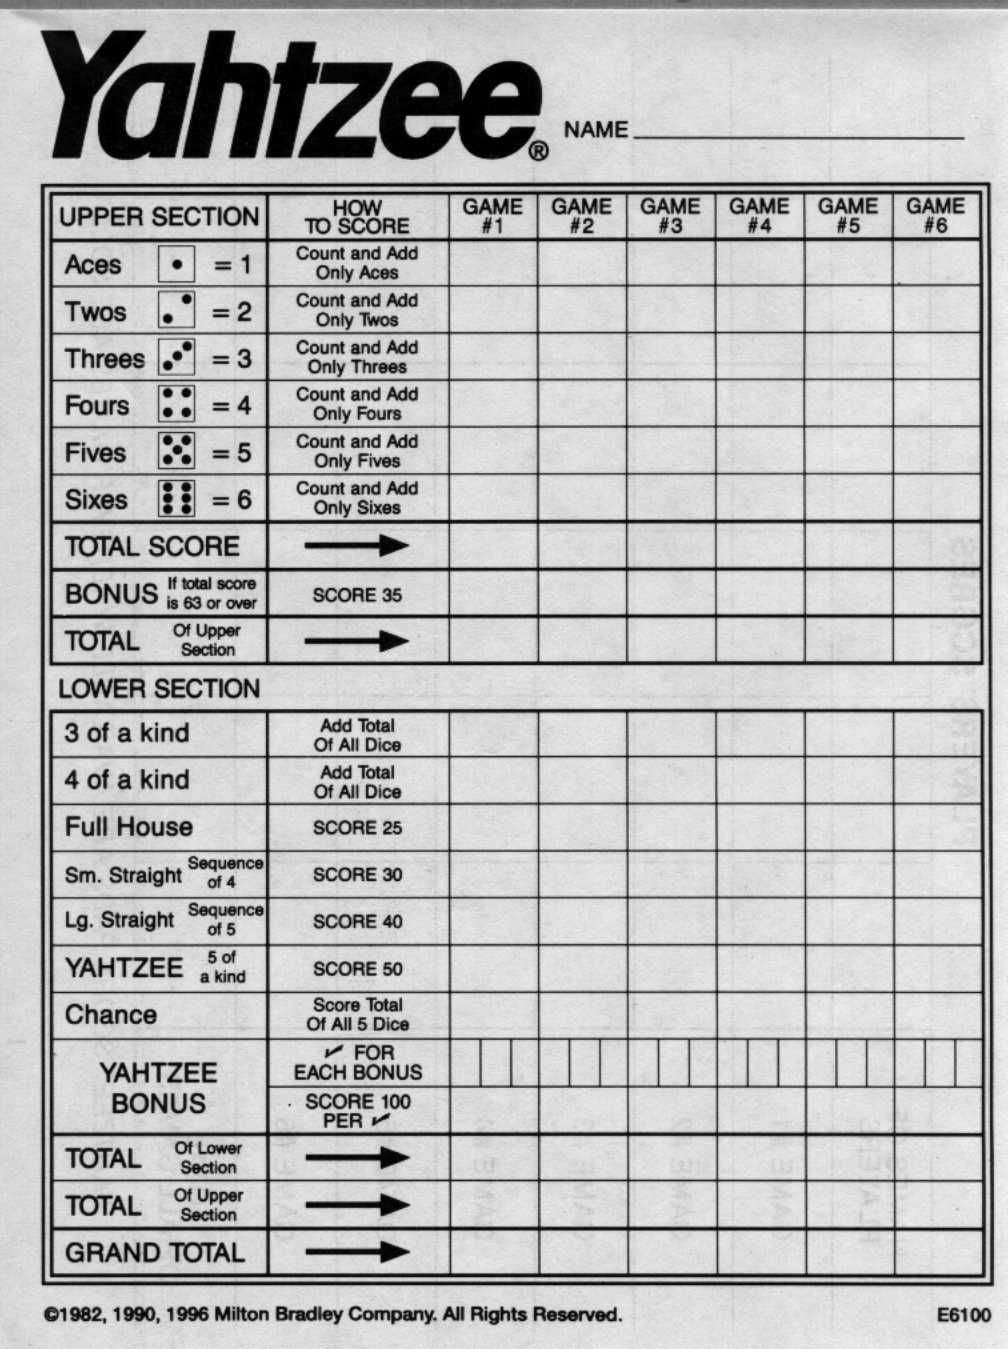 photo regarding Yahtzee Score Cards Printable identified as yahtzee rating sheets cost-free printable Blank Yahtzee Rating